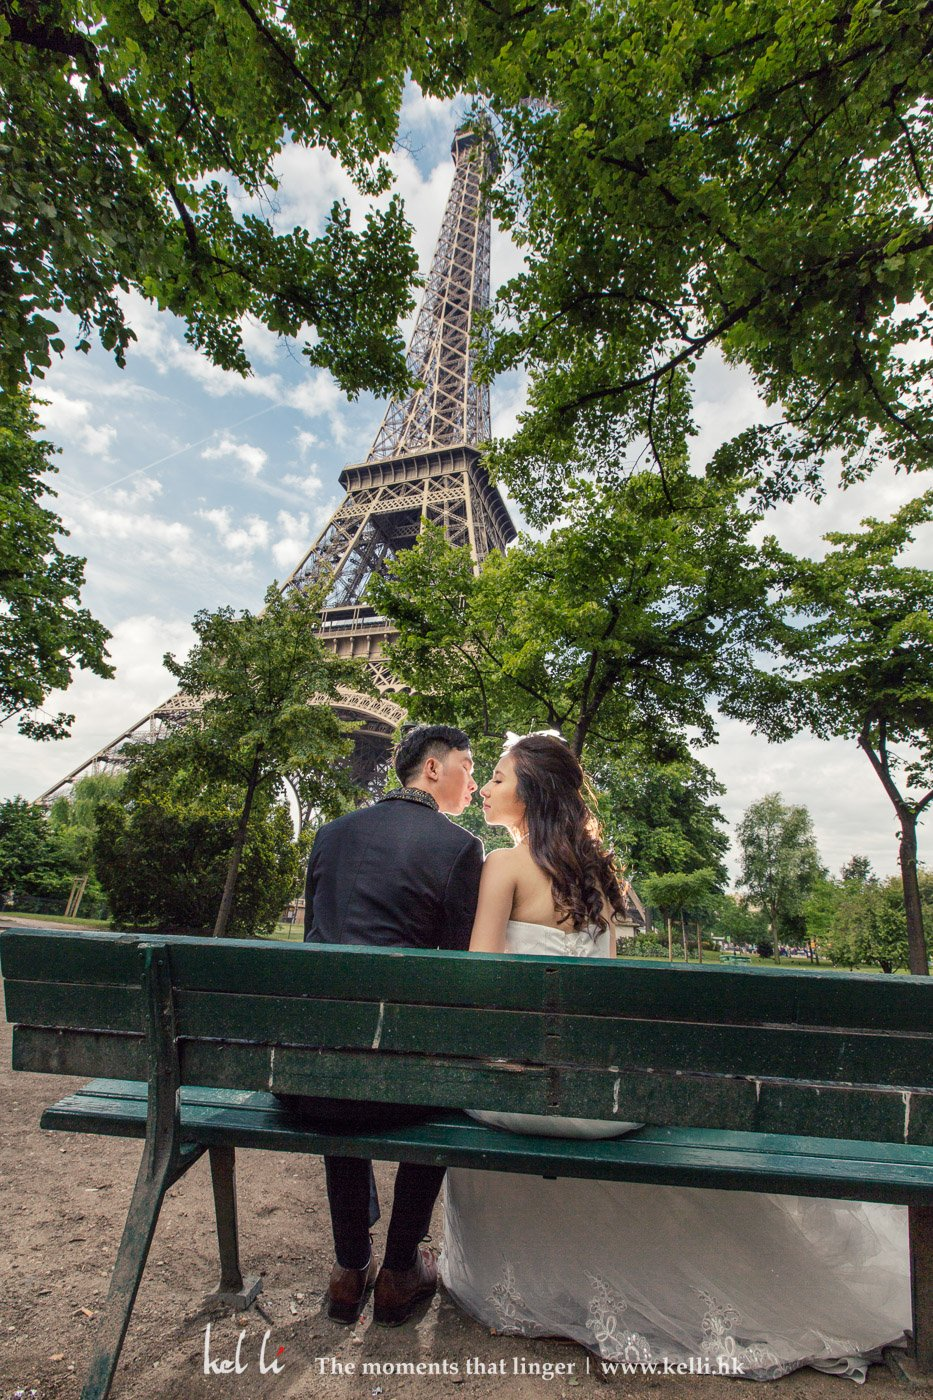 Another pre-wedding photo under Eiffel Tower.